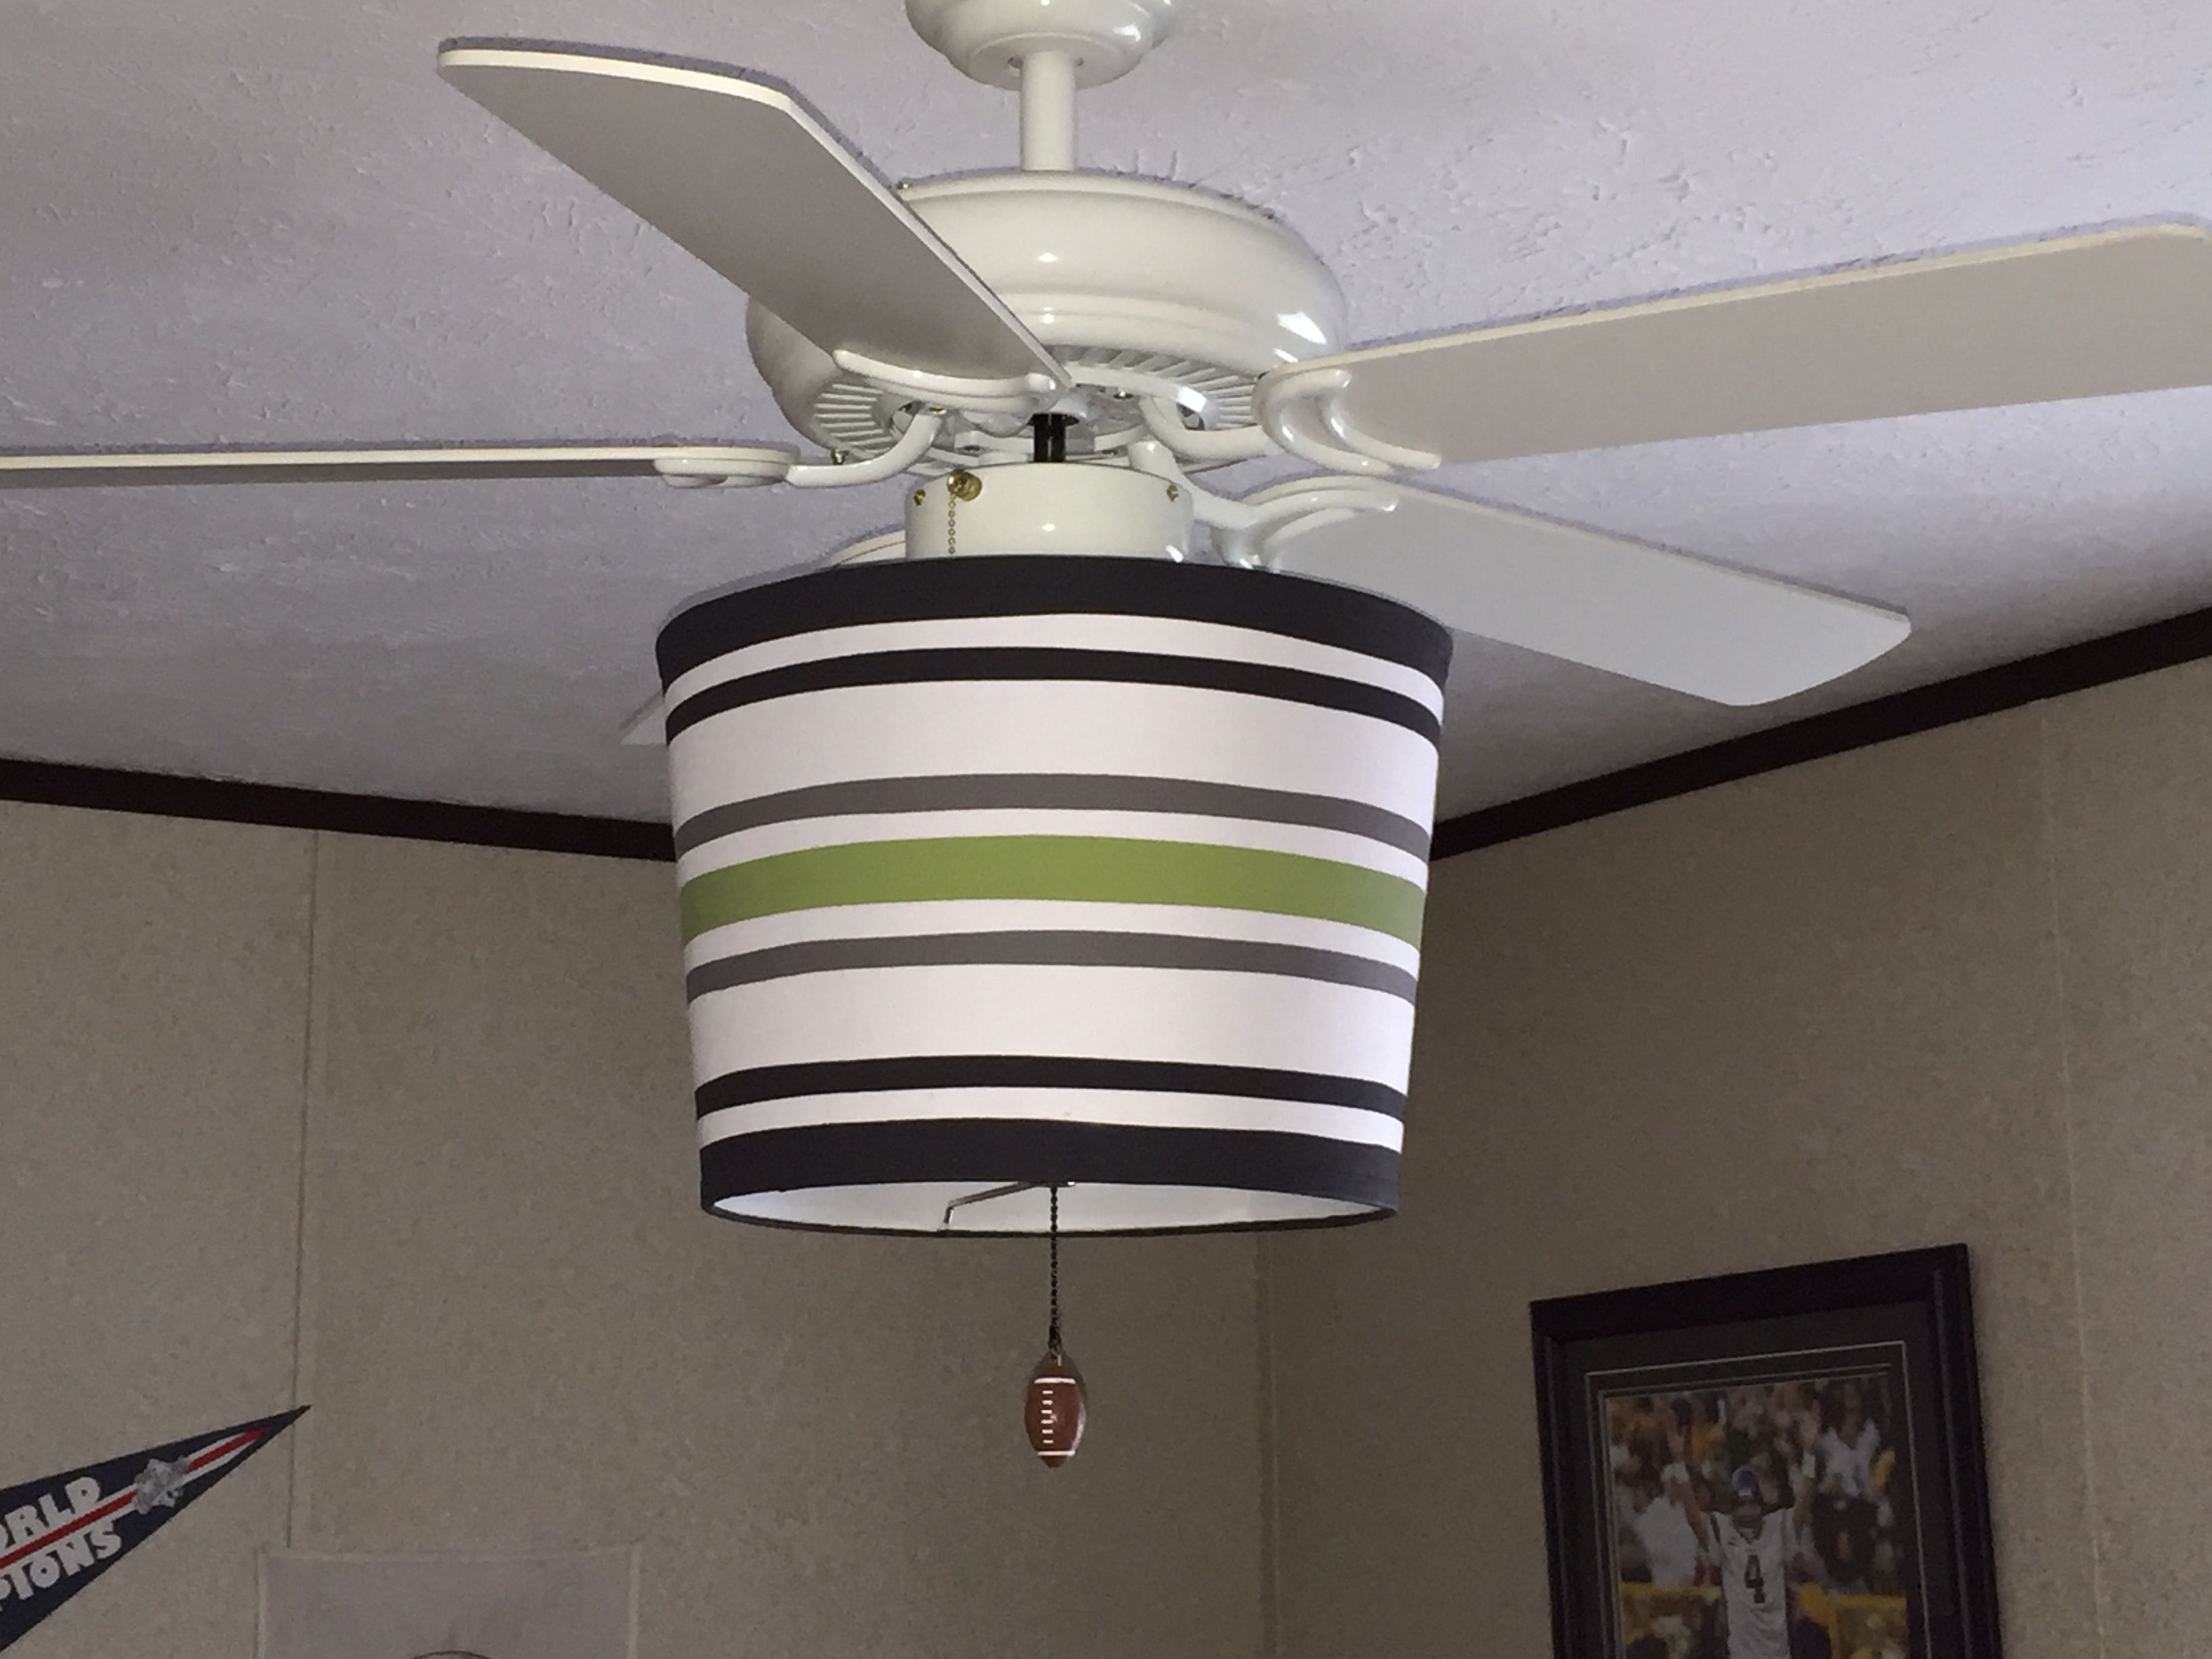 Ceiling fan drum shade turned upside down painted with